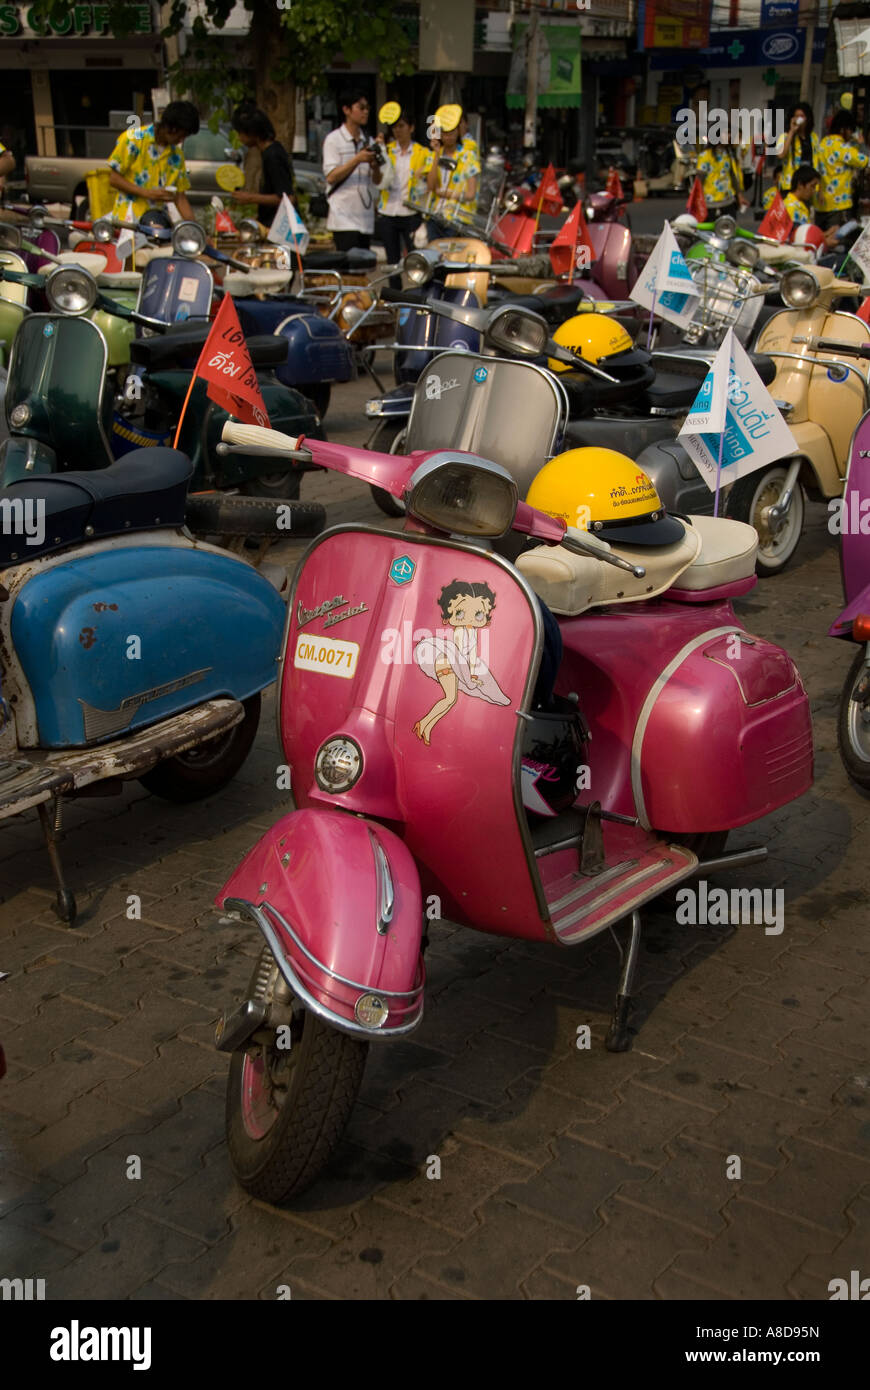 Pink Vespa With Yellow Helmet On The Seat Parked With Others Stock Photo Alamy